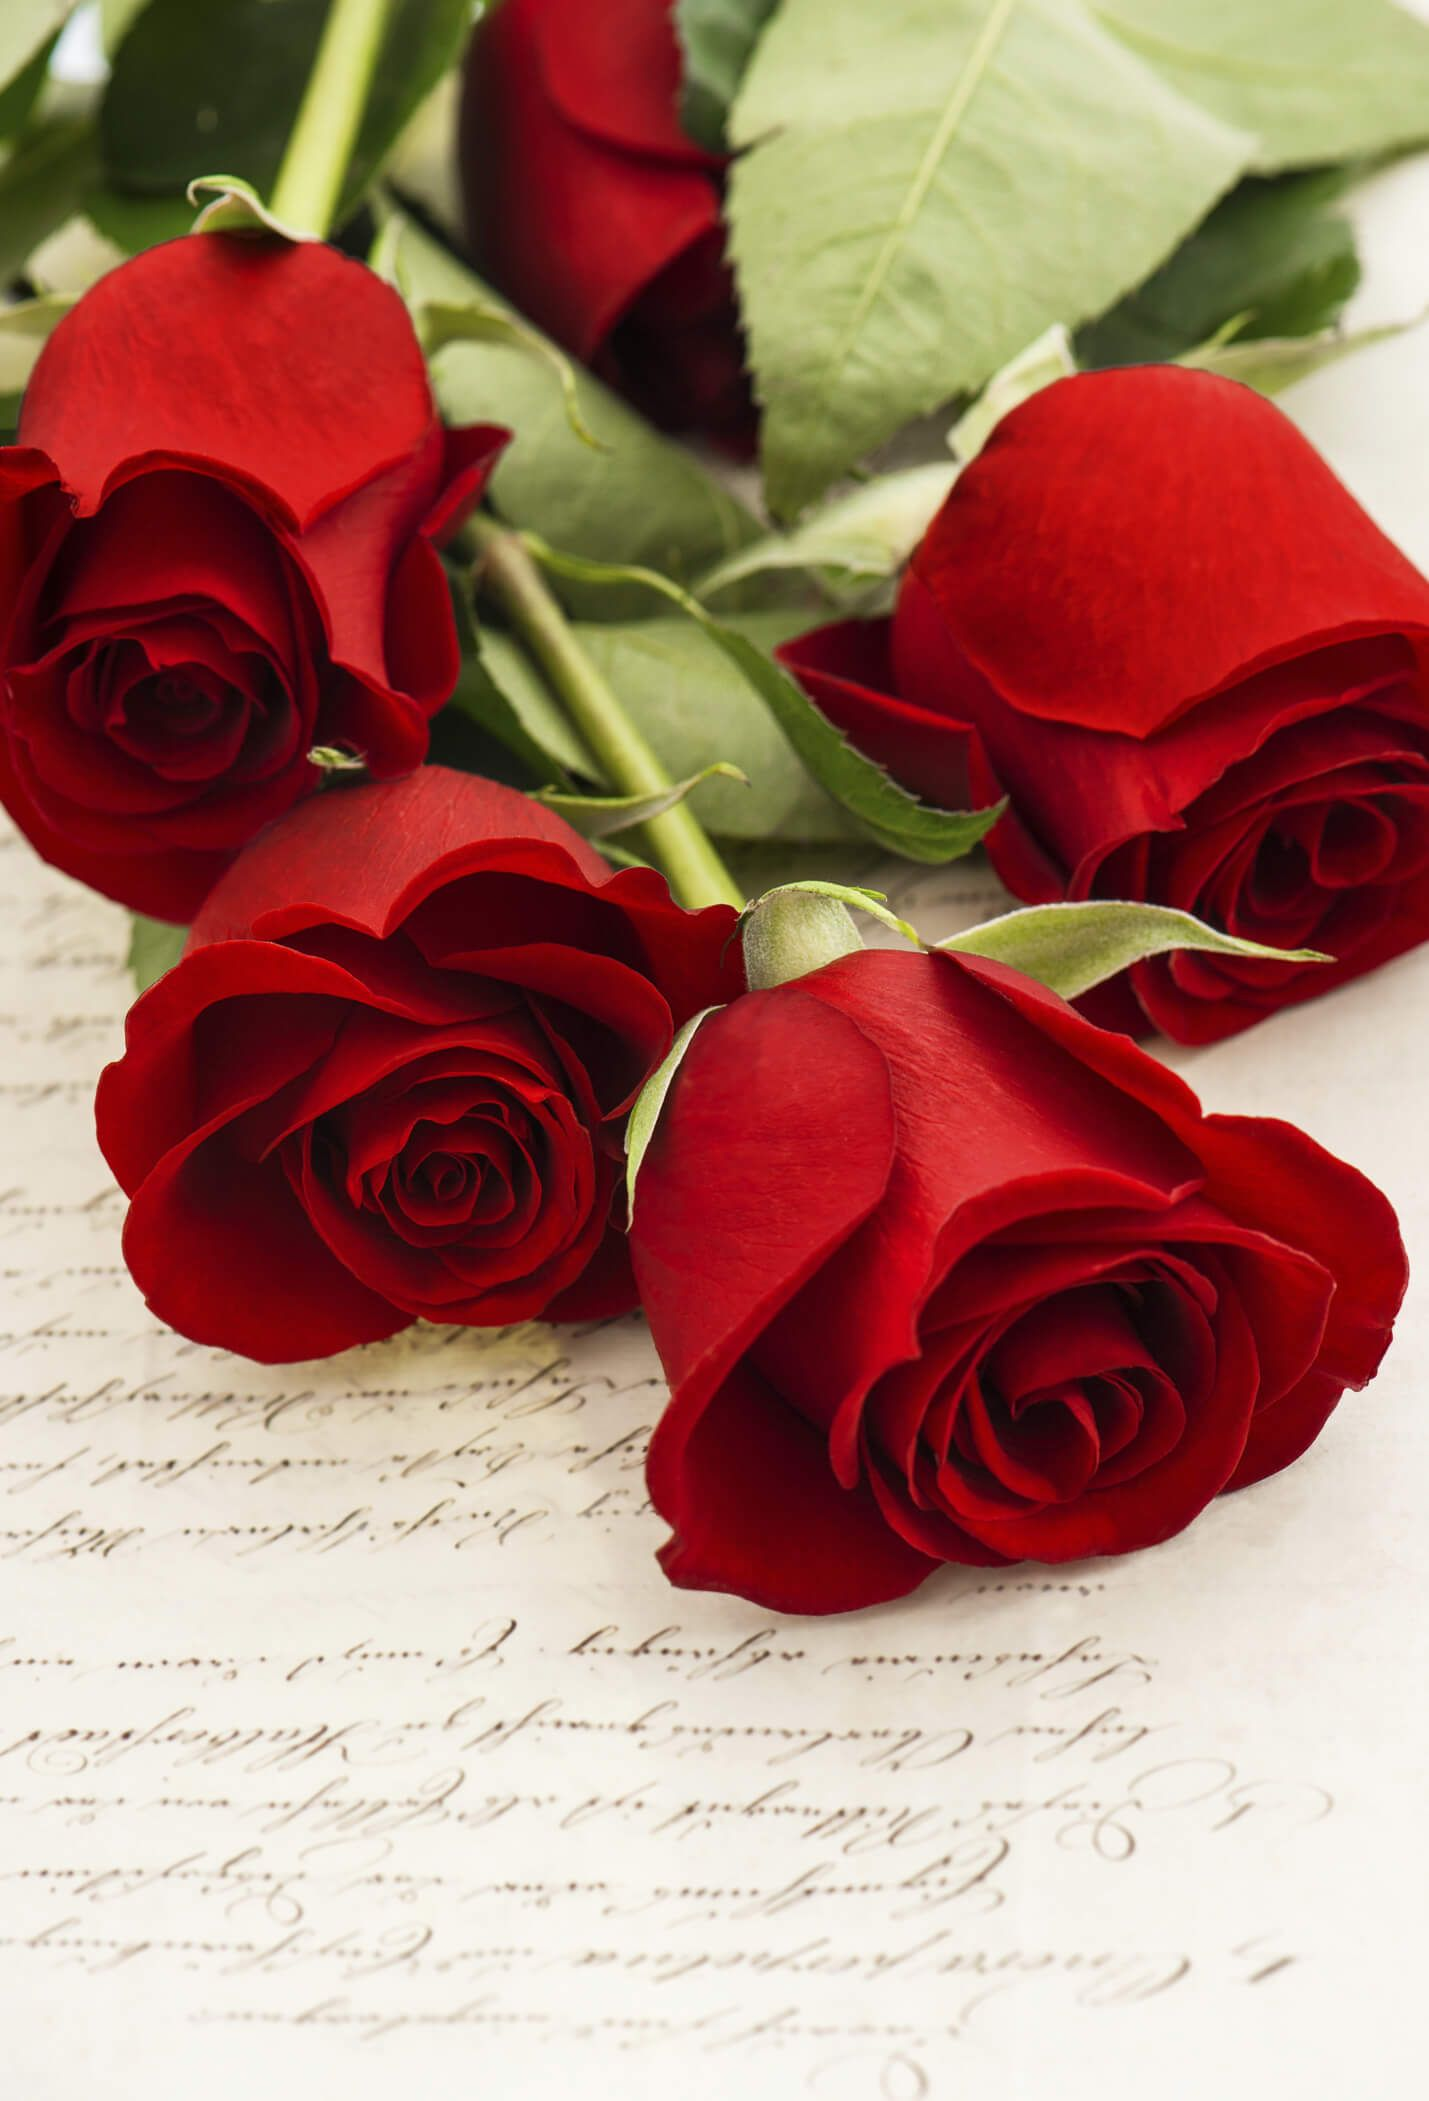 Choosing Best Flowers For Your Love Partner Red Flower Bouquet Beautiful Rose Flowers Red Roses